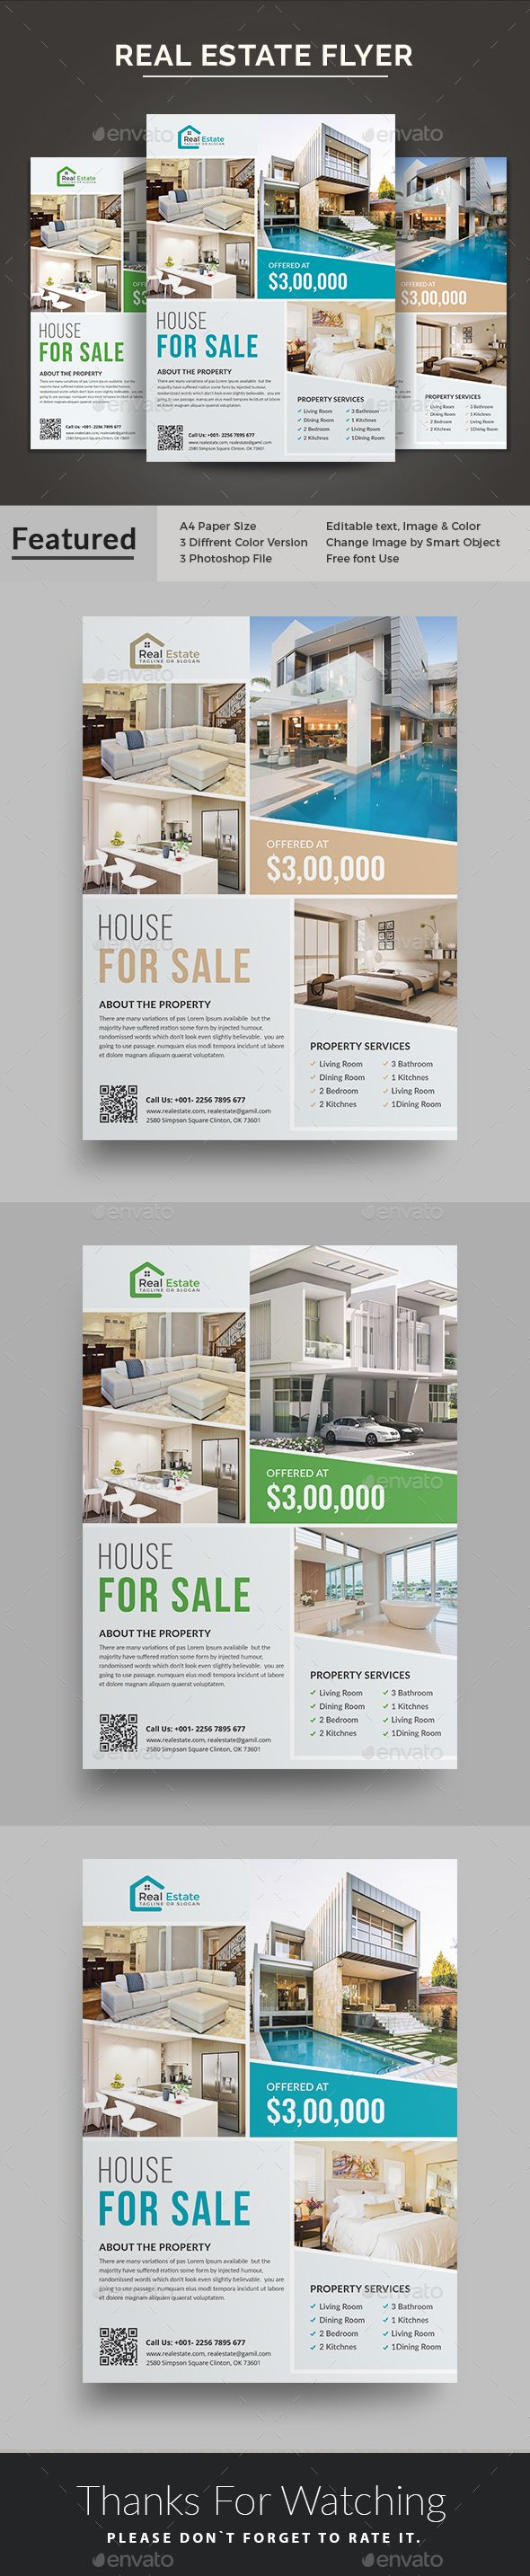 #Real Estate #Flyer Template is a great tool for promoting your real estate business also useful for a realtor or a real estate agent. You can use it for real estate listings, advertising homes or property for sale or houses for rent.  Fully editable template, you can add images of your choice and change the texts. You will get 3 Color versions. You can also use it as newspaper and magazine ad.